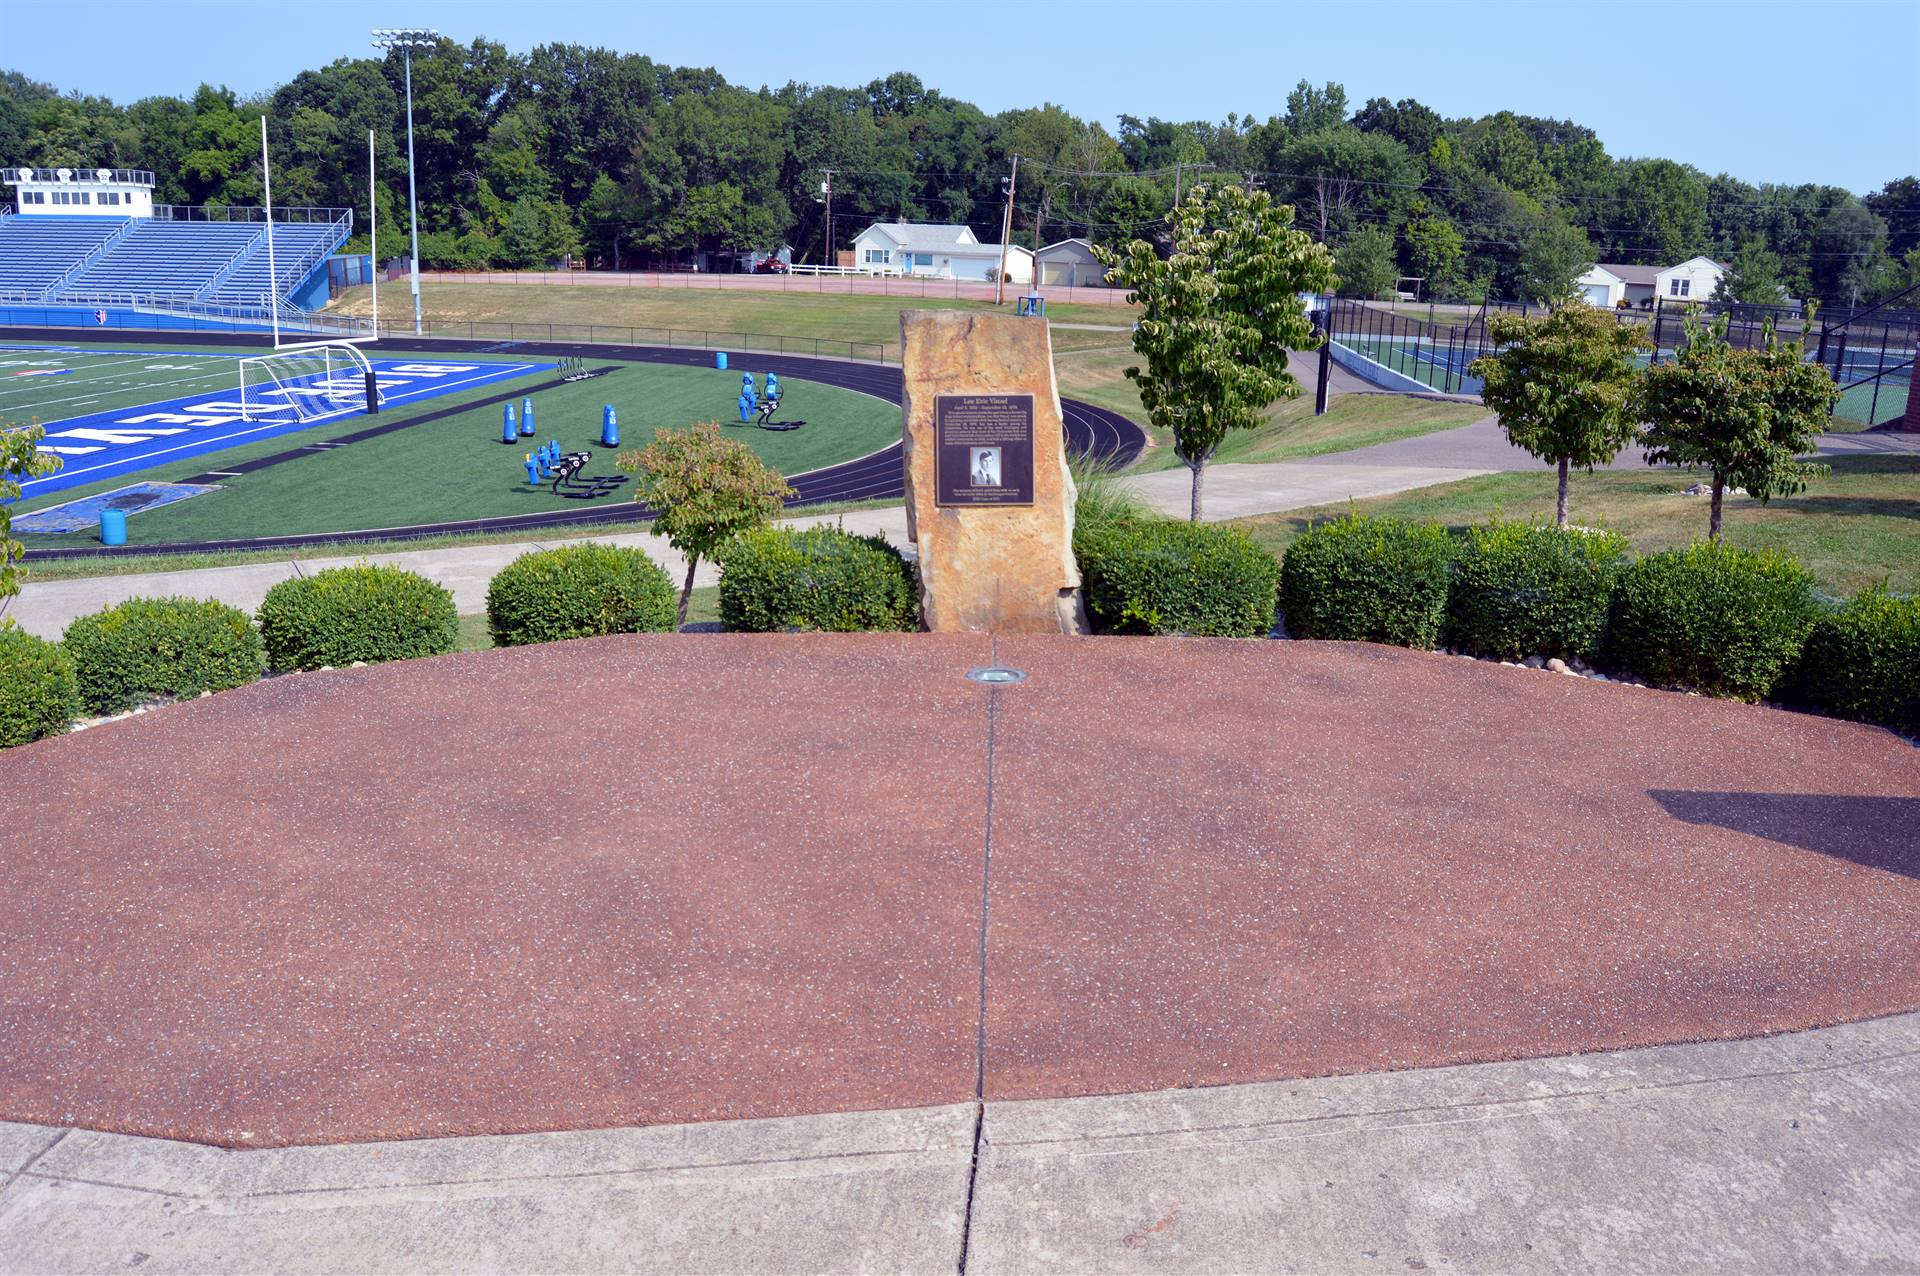 The Lee Vinsel Memorial and plaza